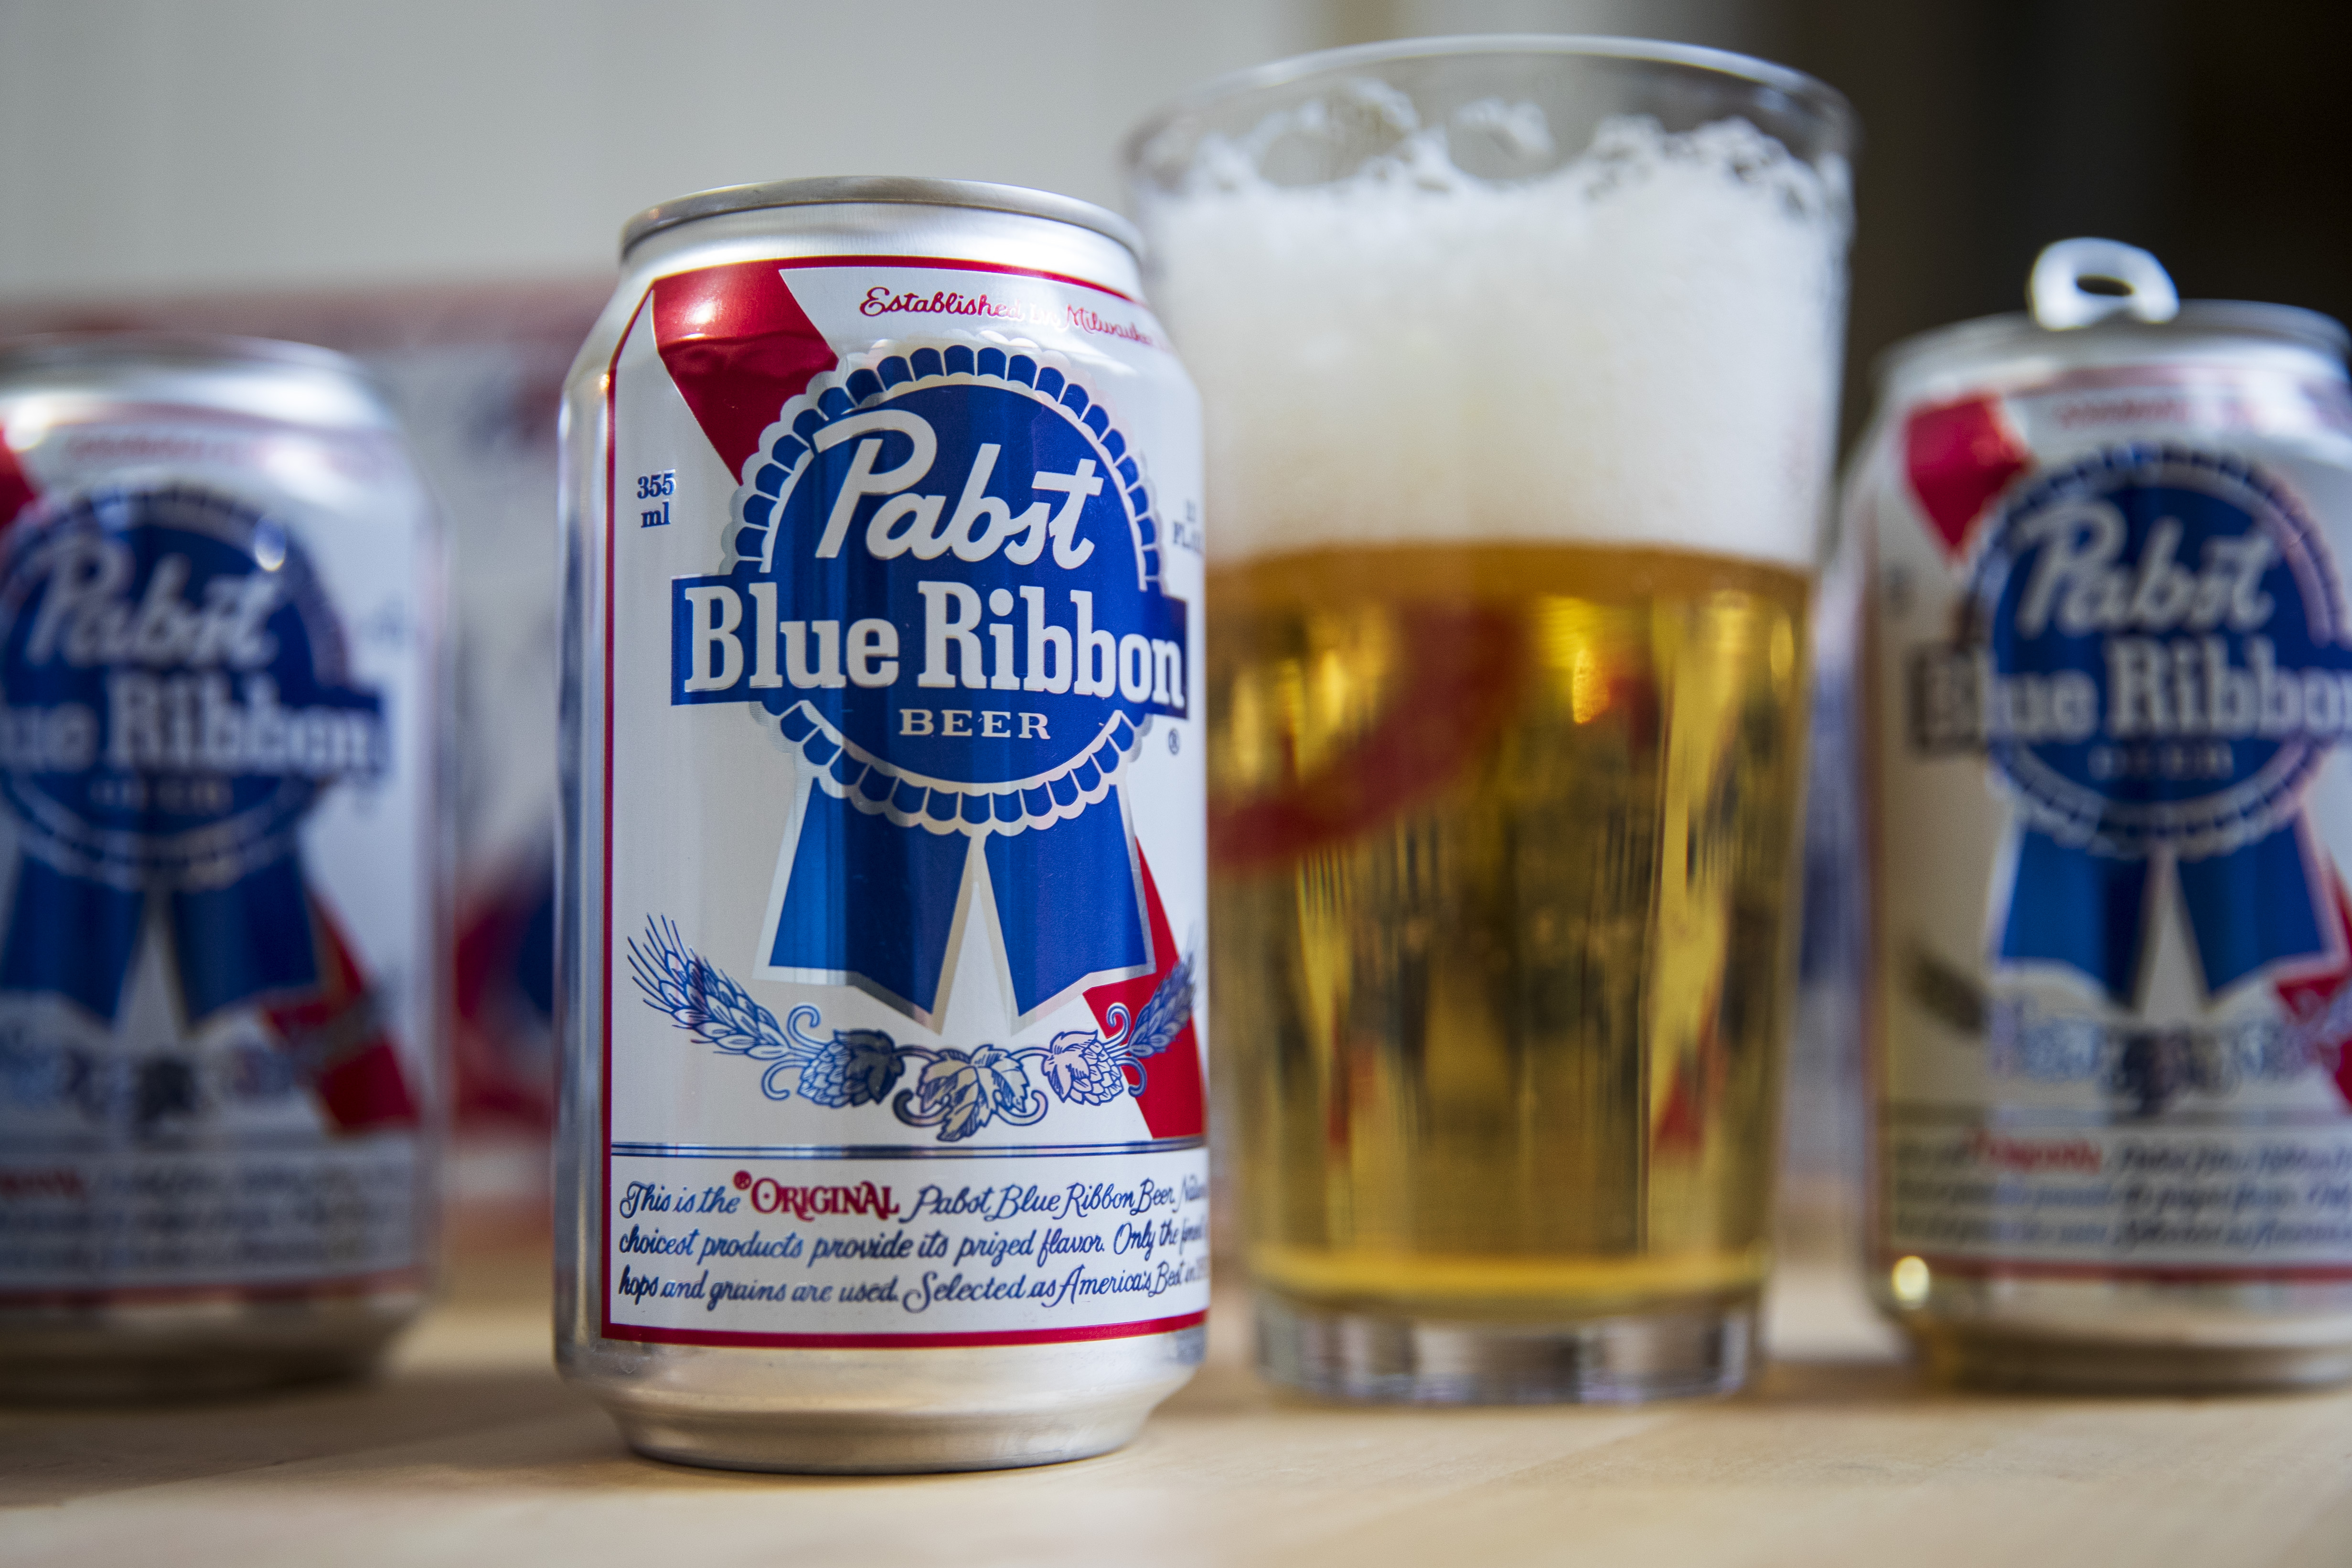 A PBR Can and beer in a pint glass